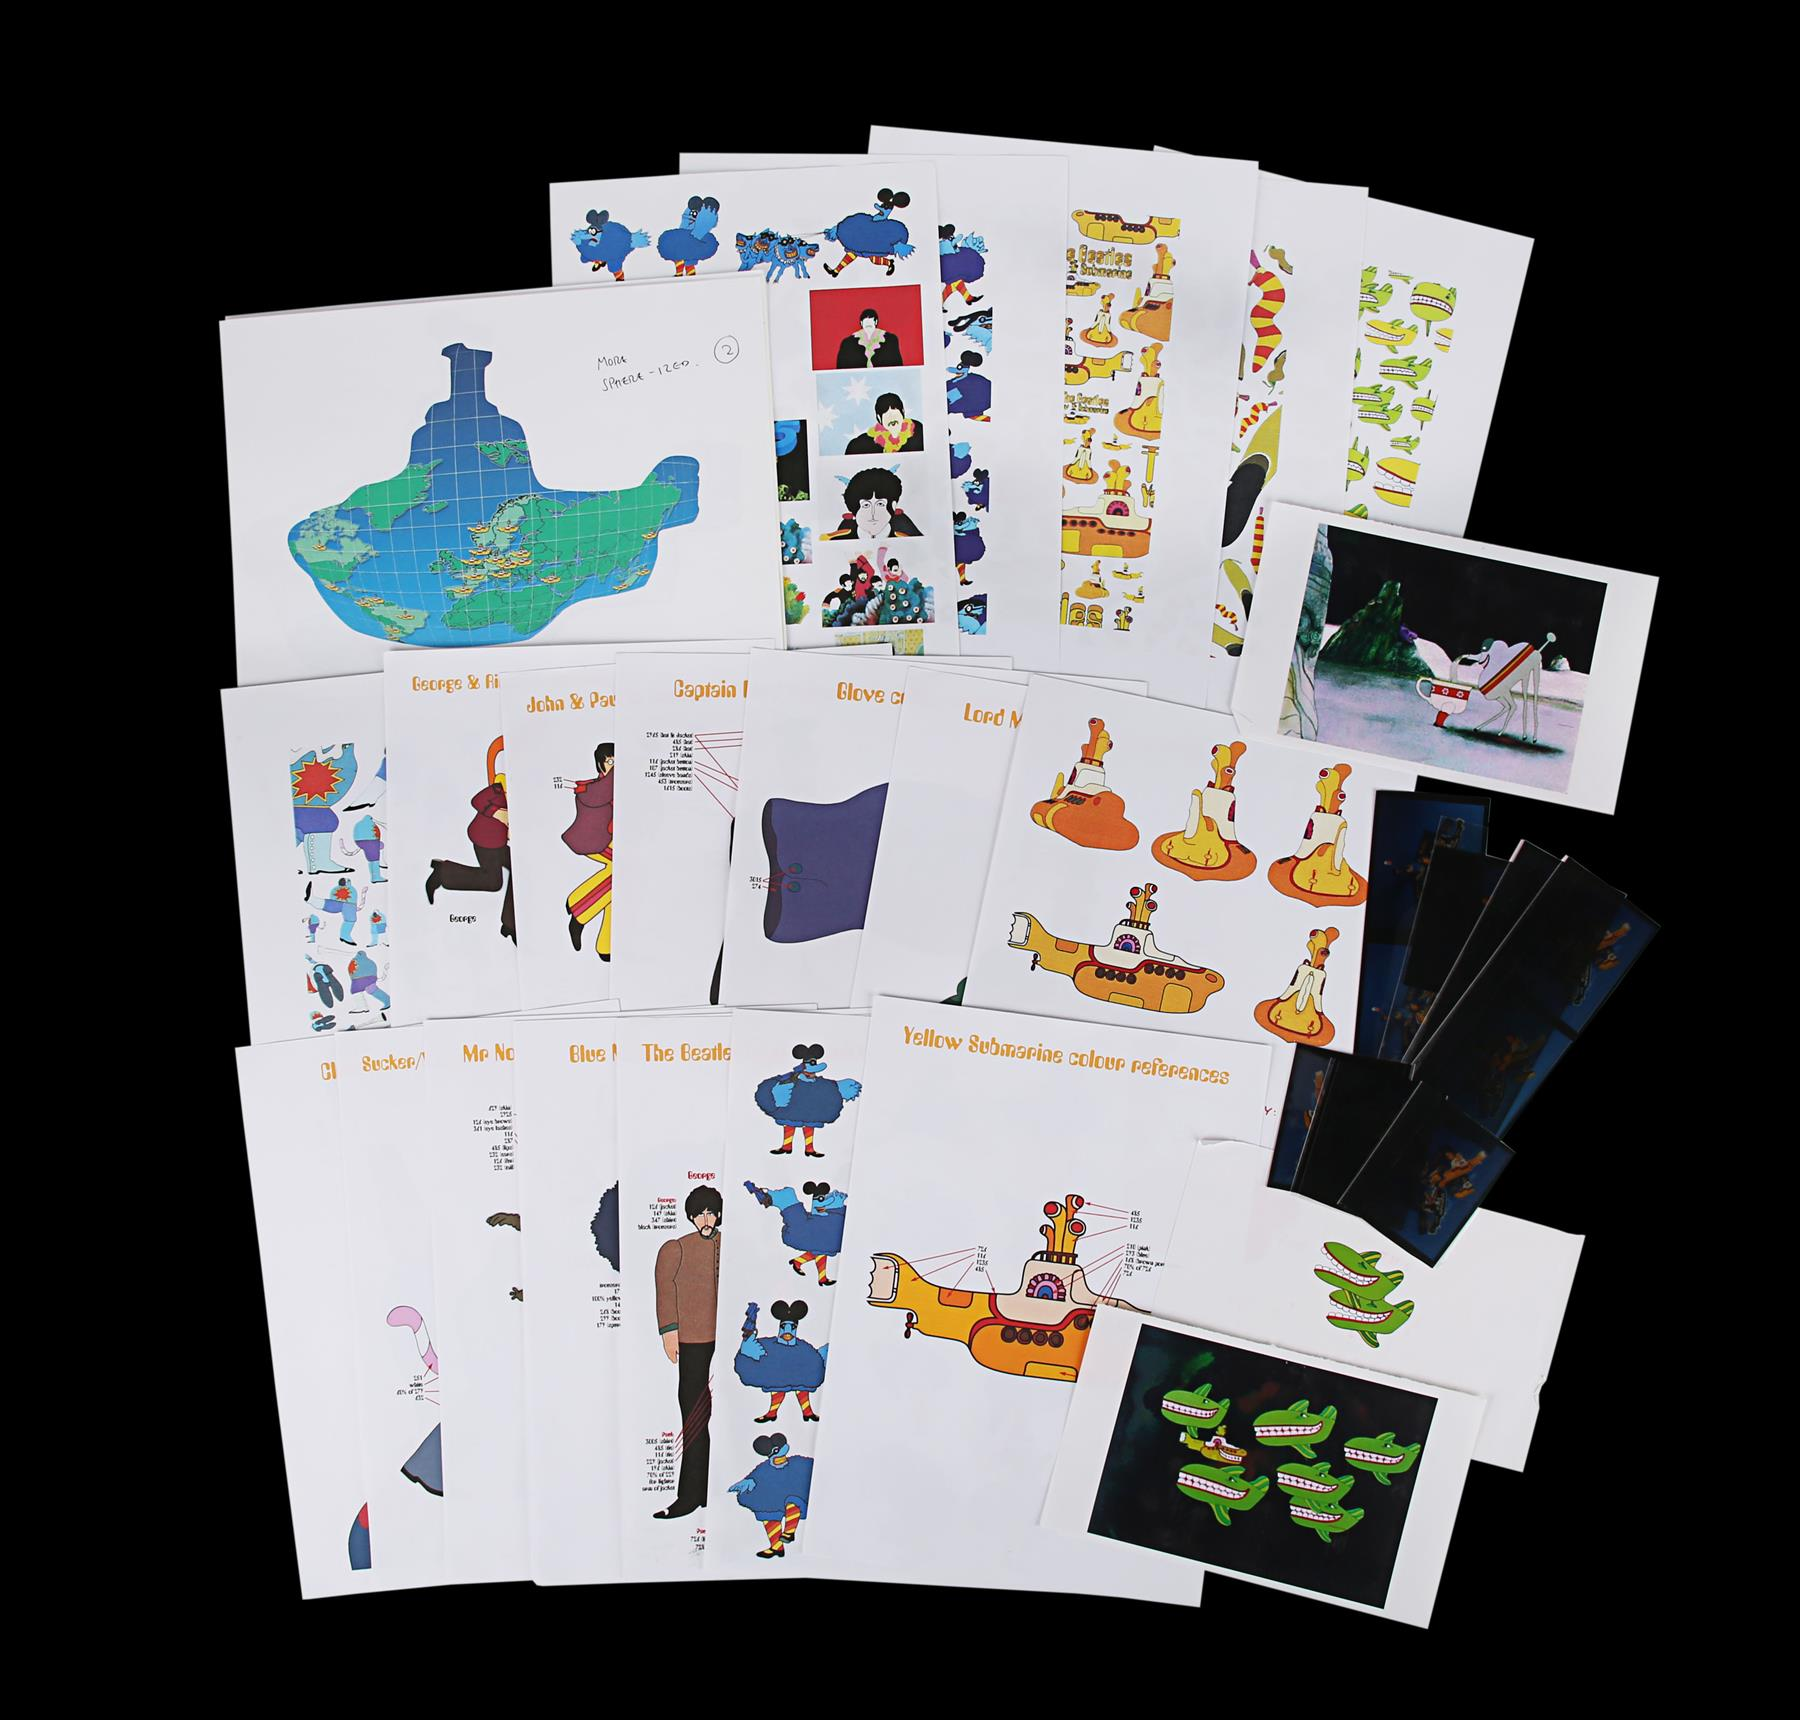 YELLOW SUBMARINE (1968) - Promotional and Marketing Items, 1999 - Image 8 of 9